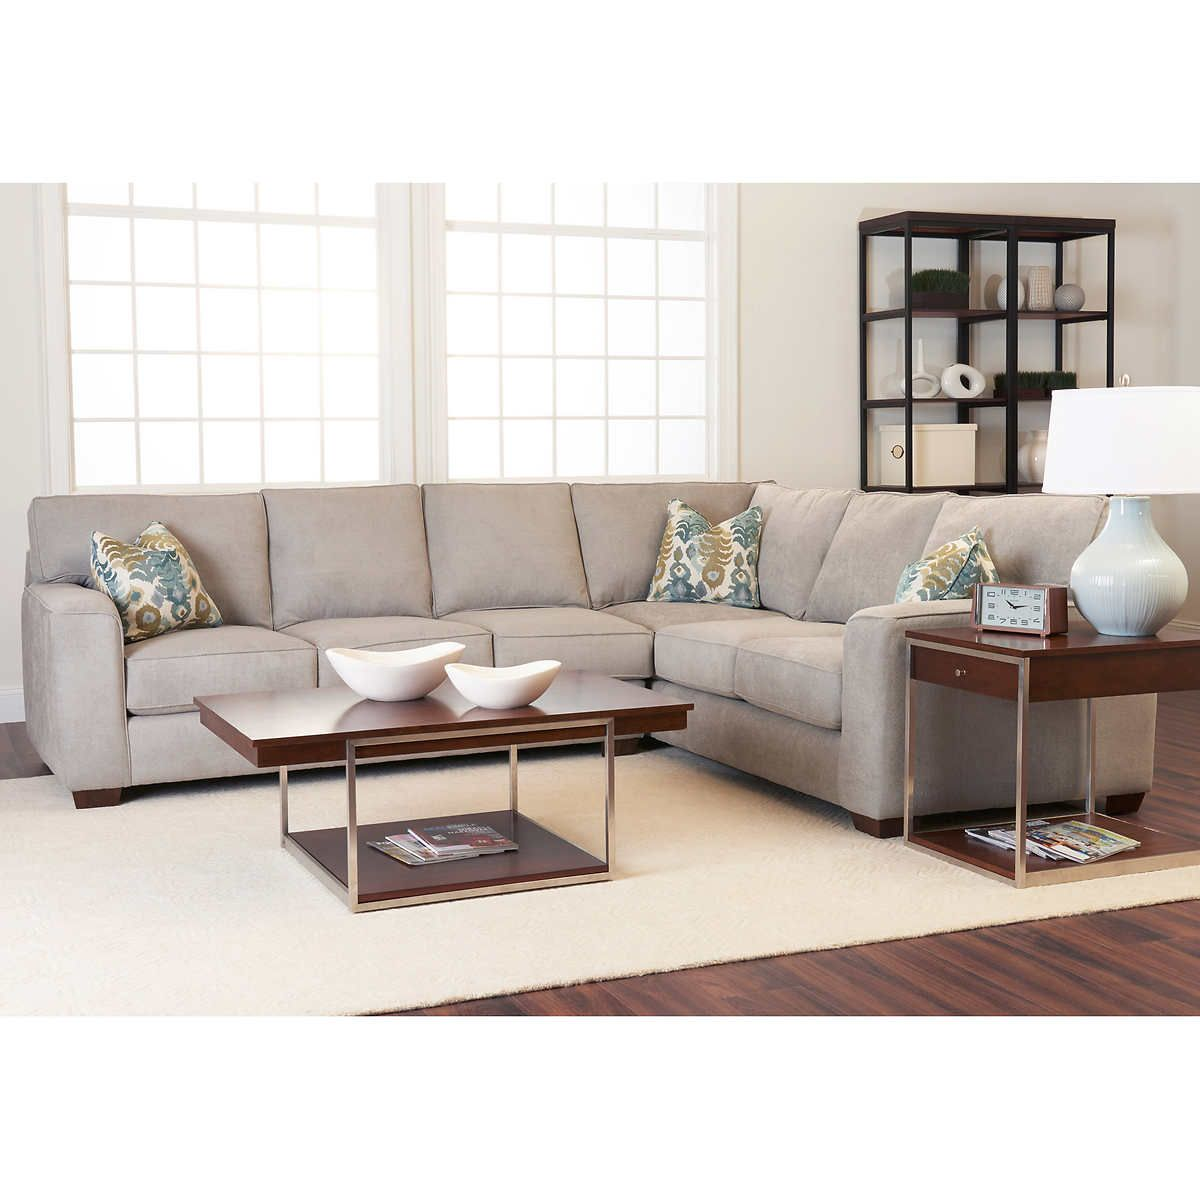 Leather Sofas Abbott Fabric Sectional GrayPolyester BlendLeft Facing Sofa Right Facing Corner Sofa with Coordinating PillowsSolid Hardwood Feet Finished In Brown